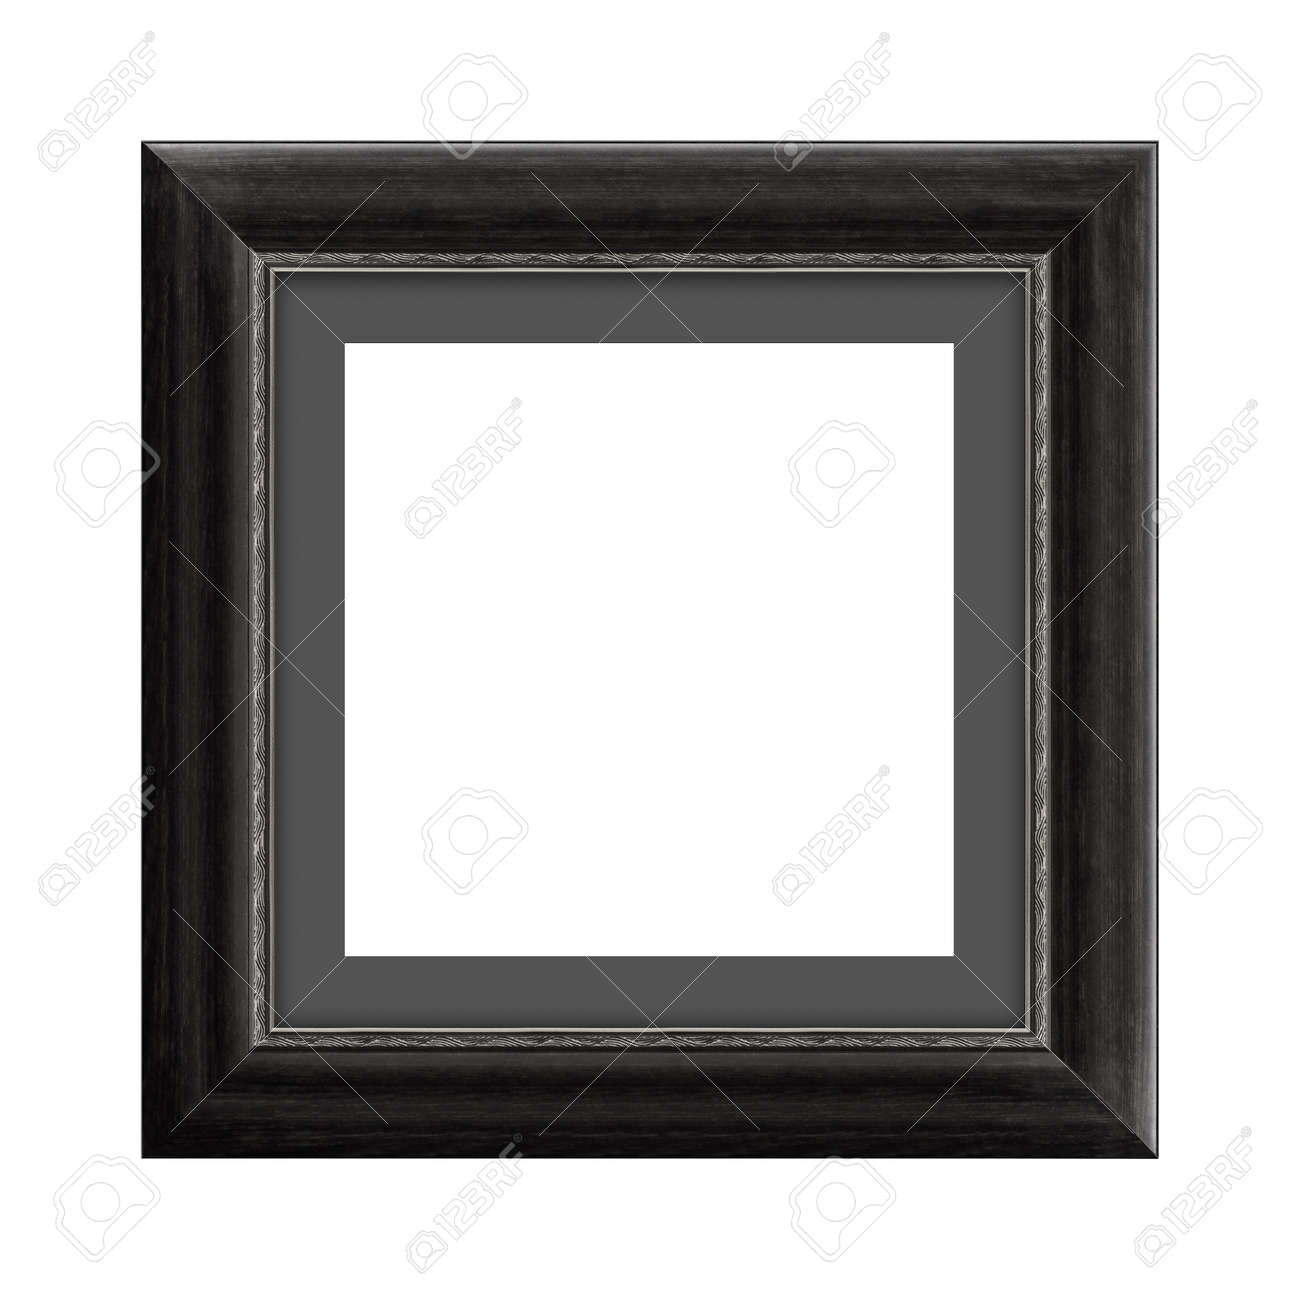 black wooden frame for picture or photo, frame for a mirror isolated on white background. With clipping path - 170242759